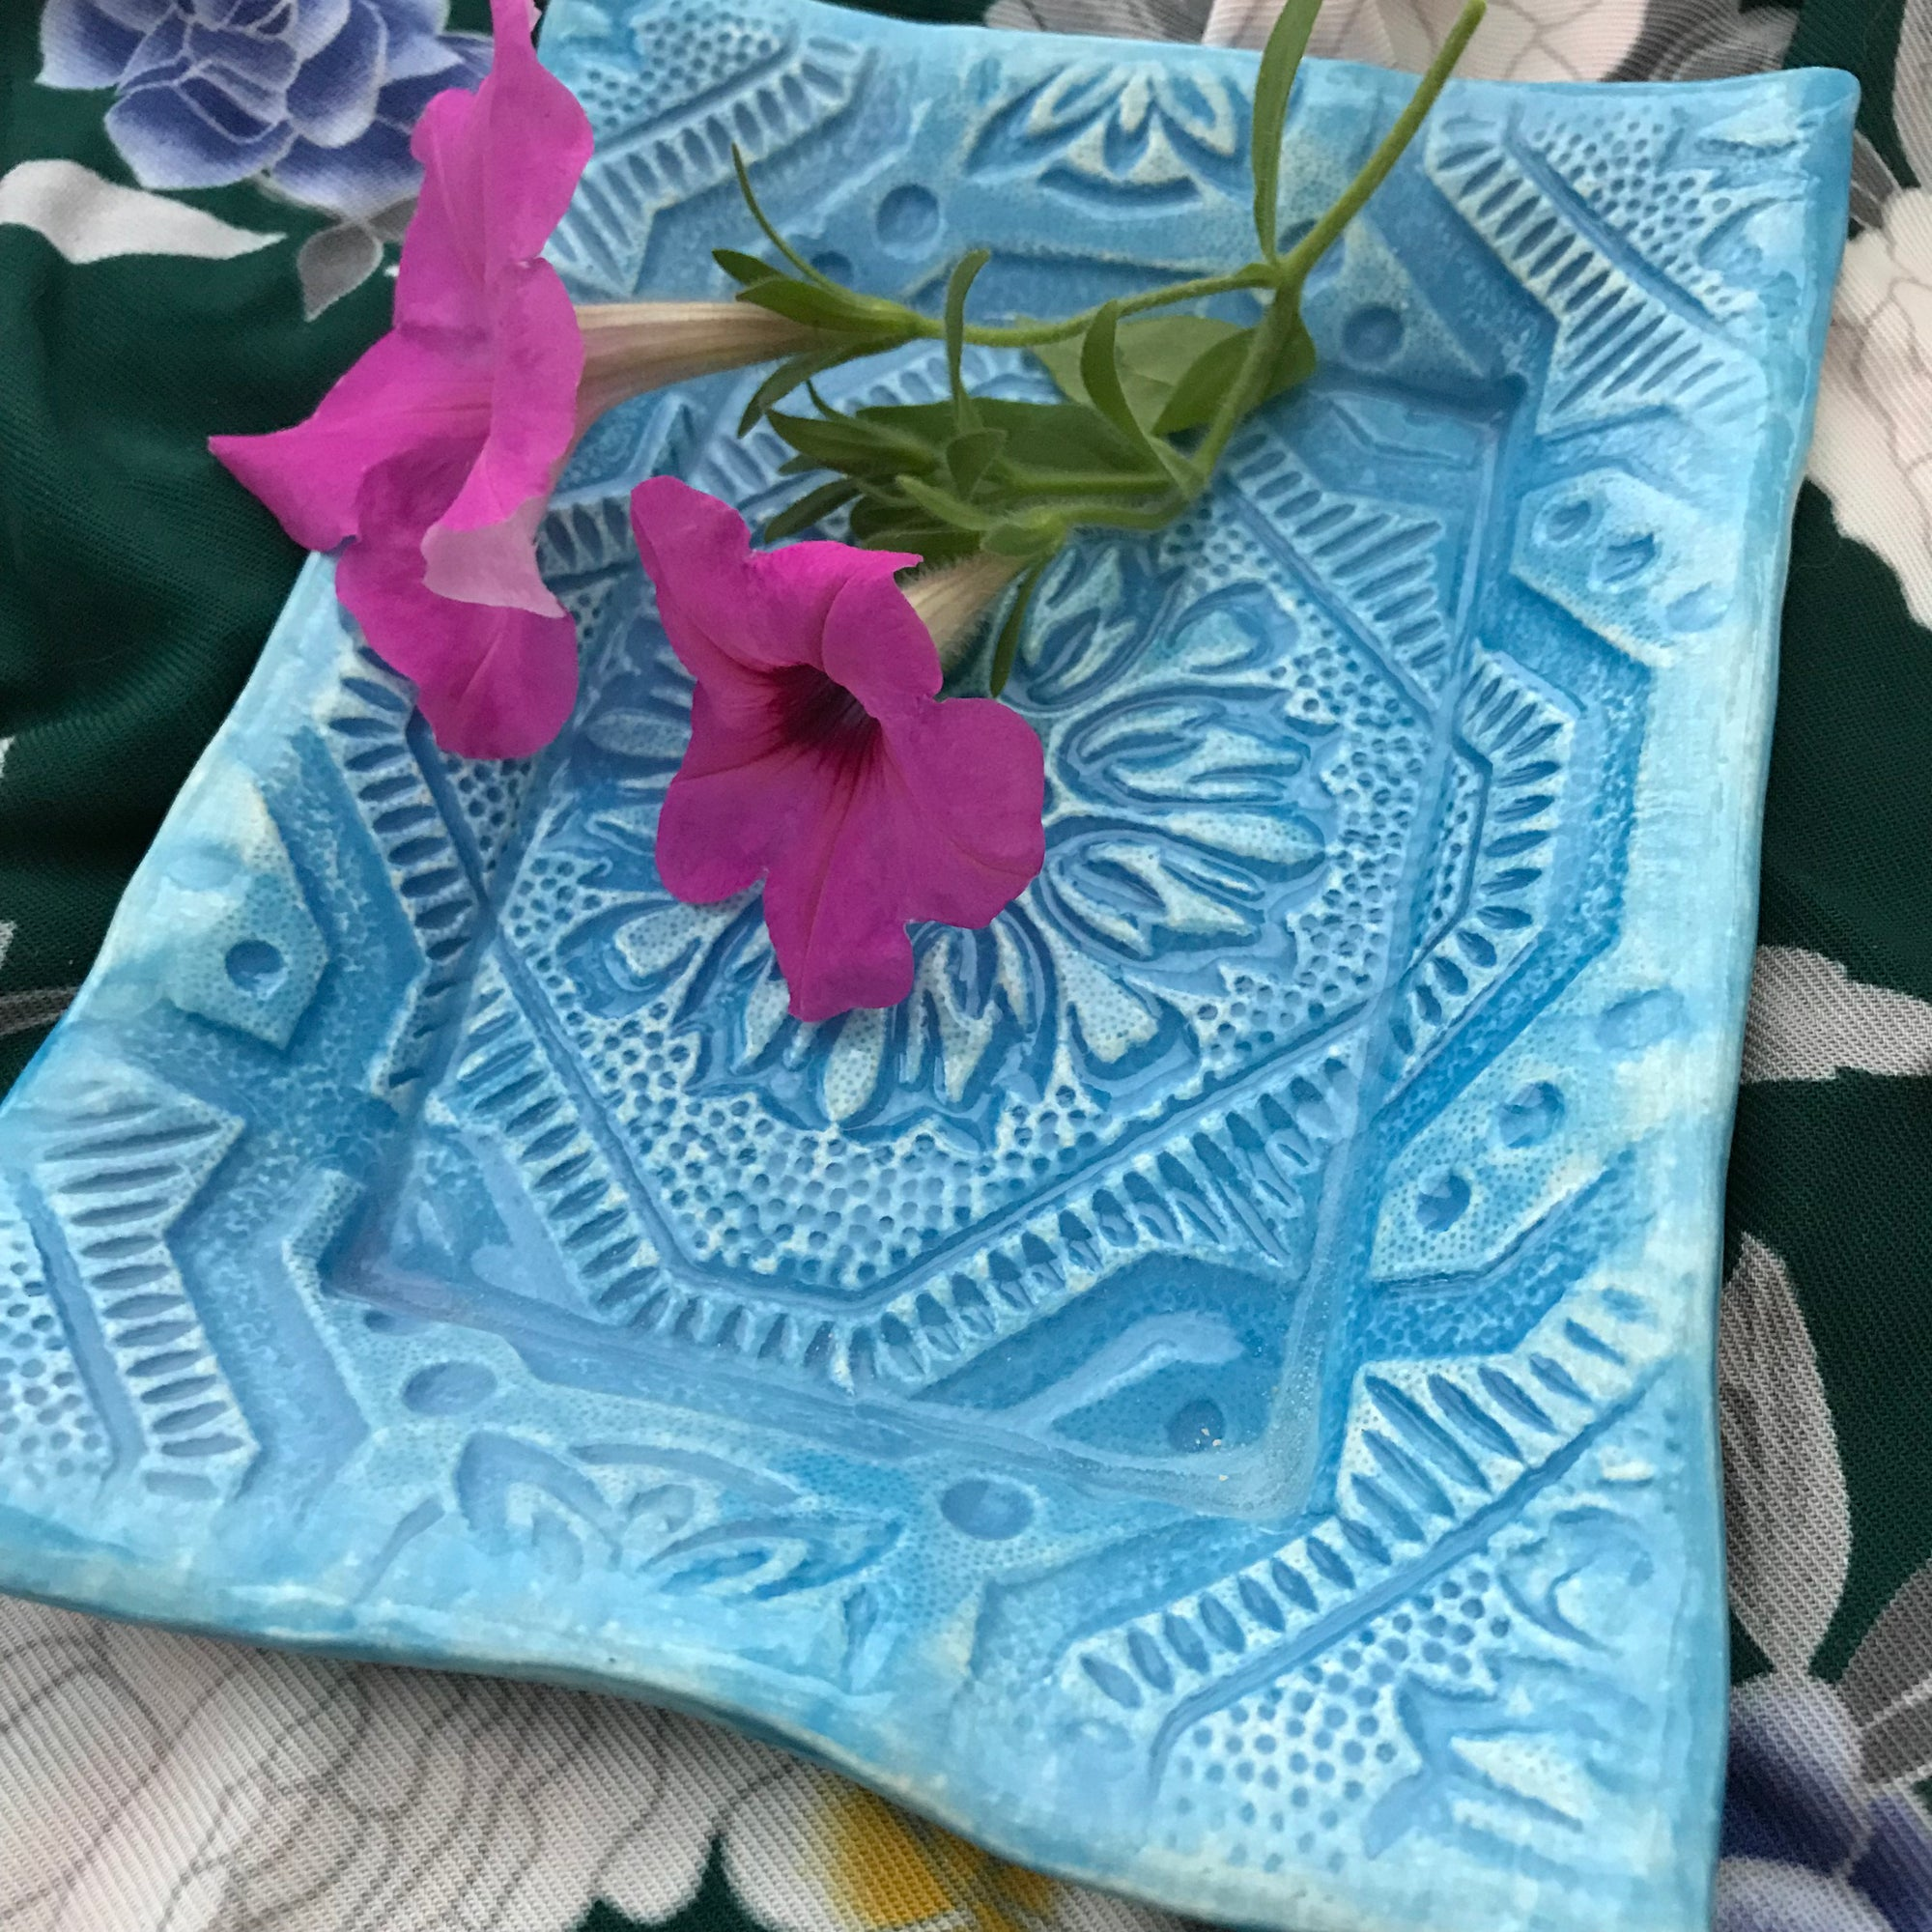 Handmade Earthenware Tray In Tin Ceiling Pattern Created By Lorraine Oerth and Company.  Alexandria Virginia.  Glazed In A Pretty Teal Blue.